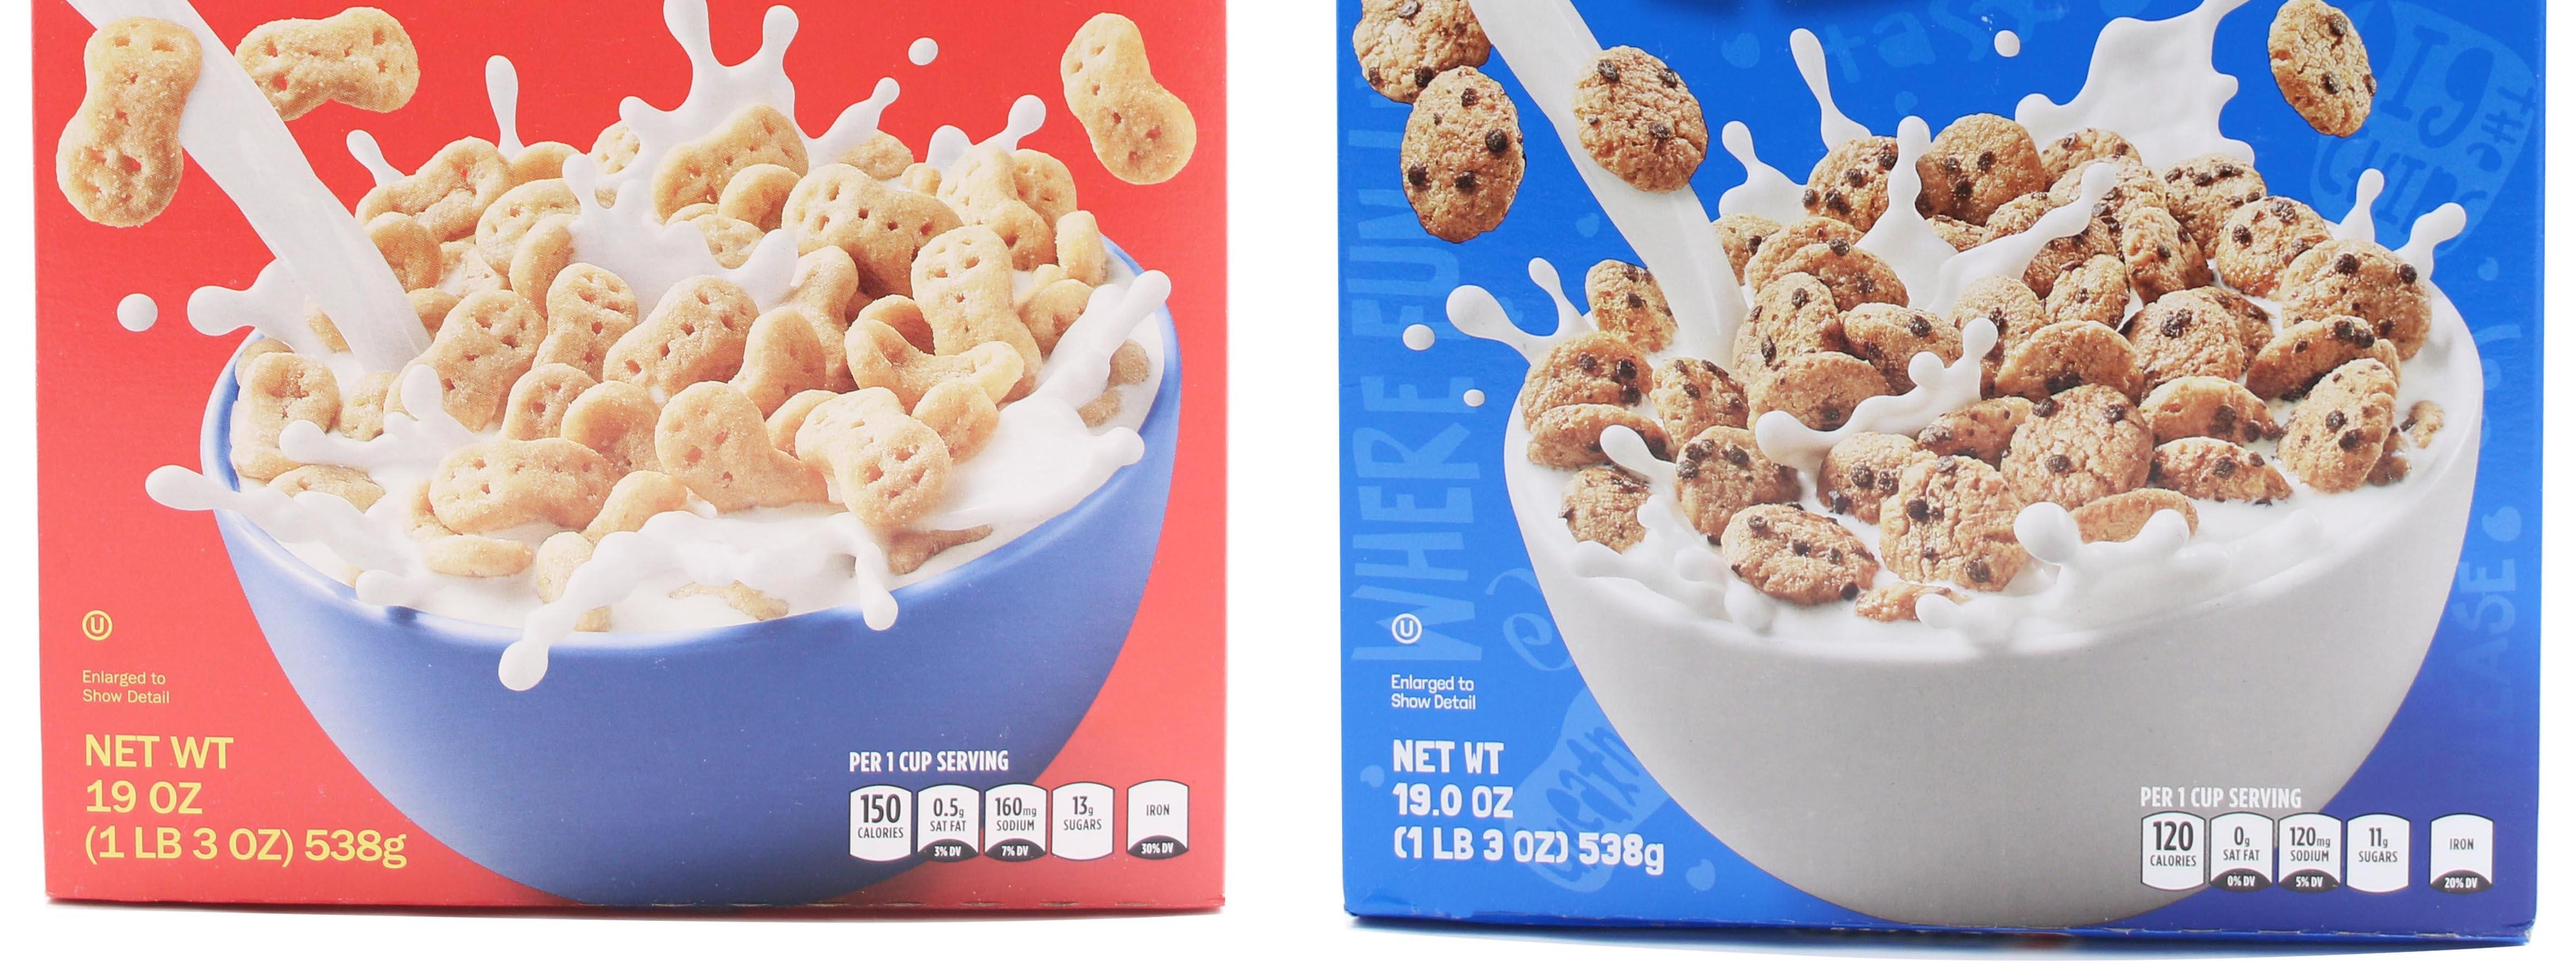 Chips ahoy cereal coupons